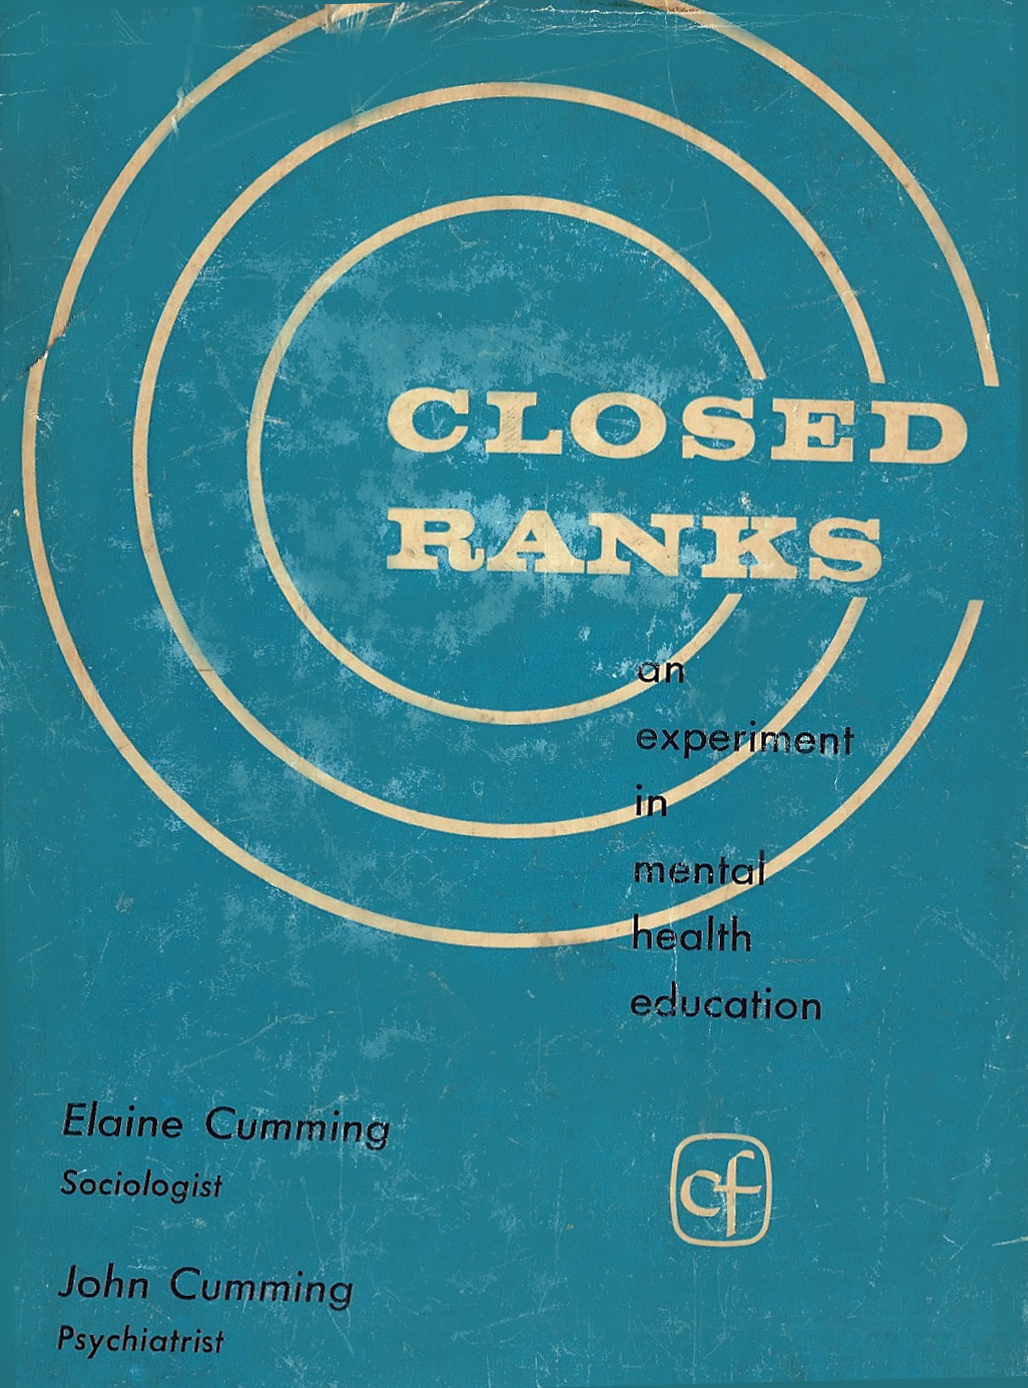 old blue book cover with title Closed Ranks